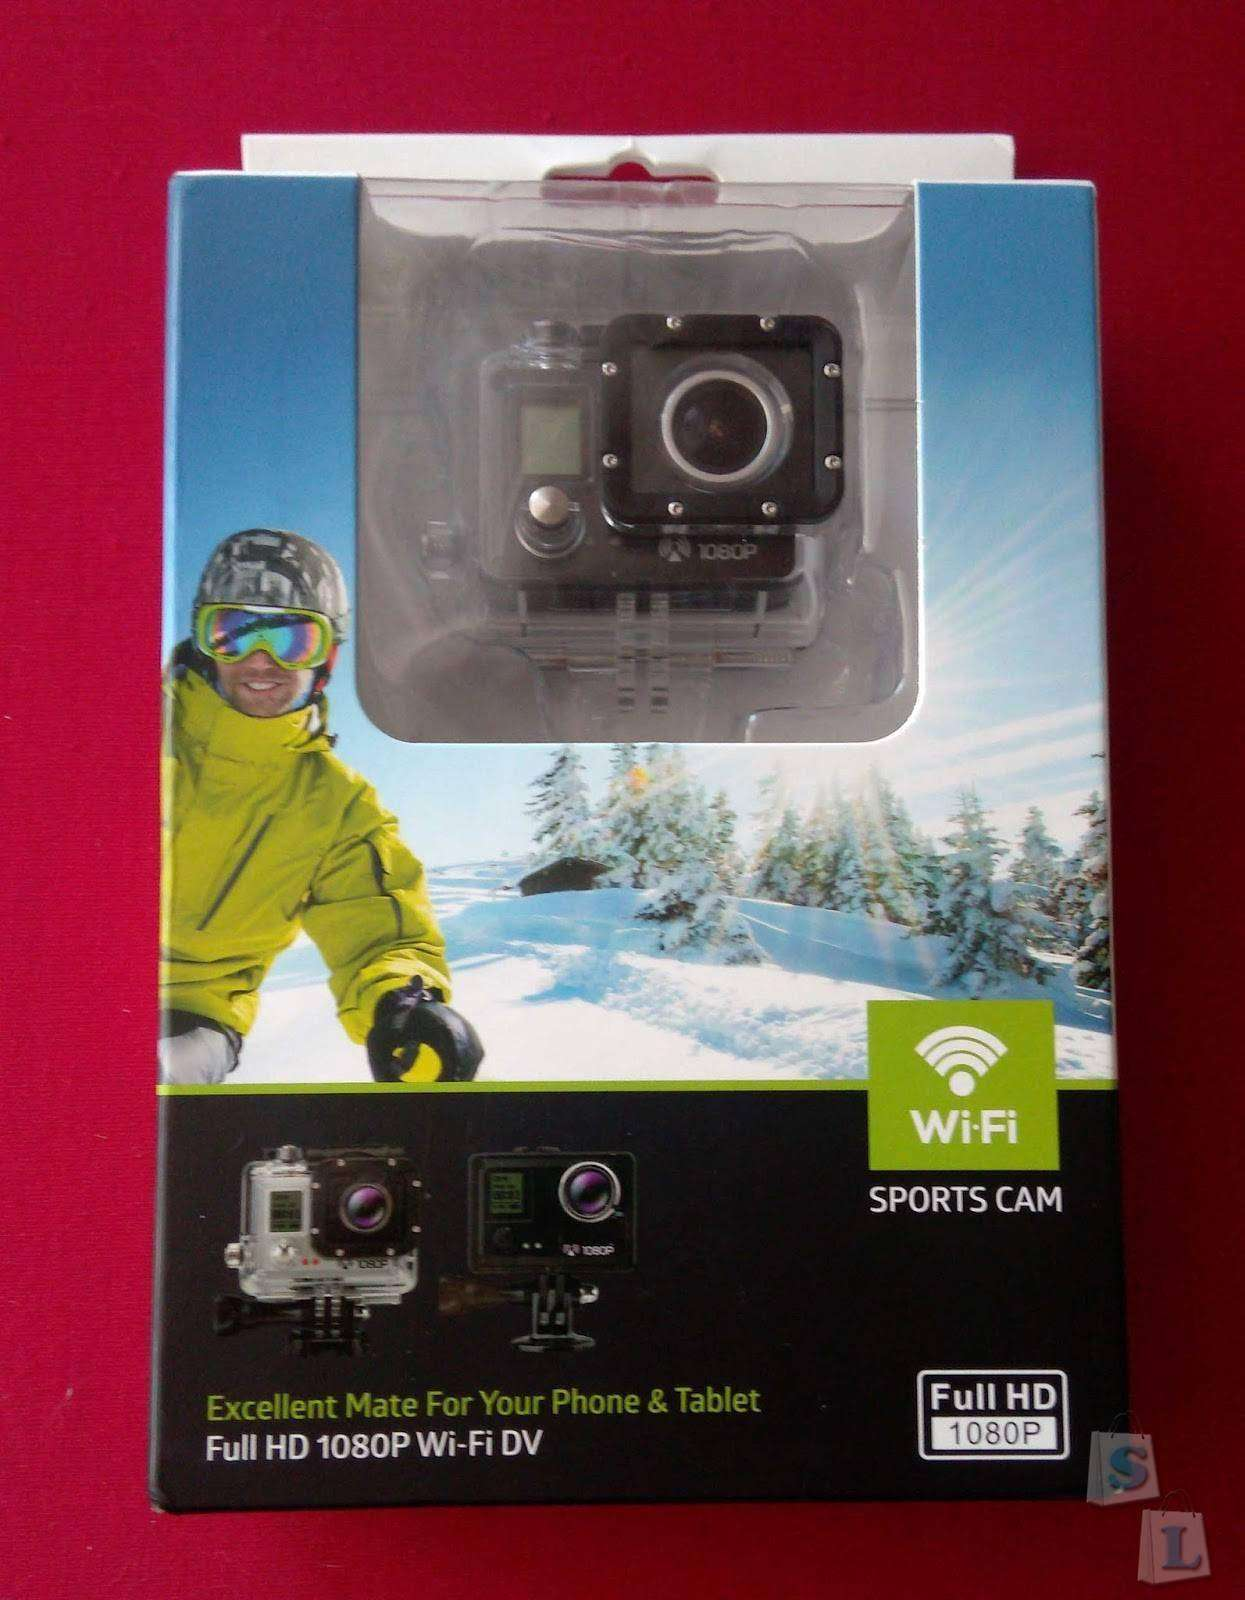 GearBest: Amkov AMK5000S Wireless WiFi Waterproof Sports Action Camera